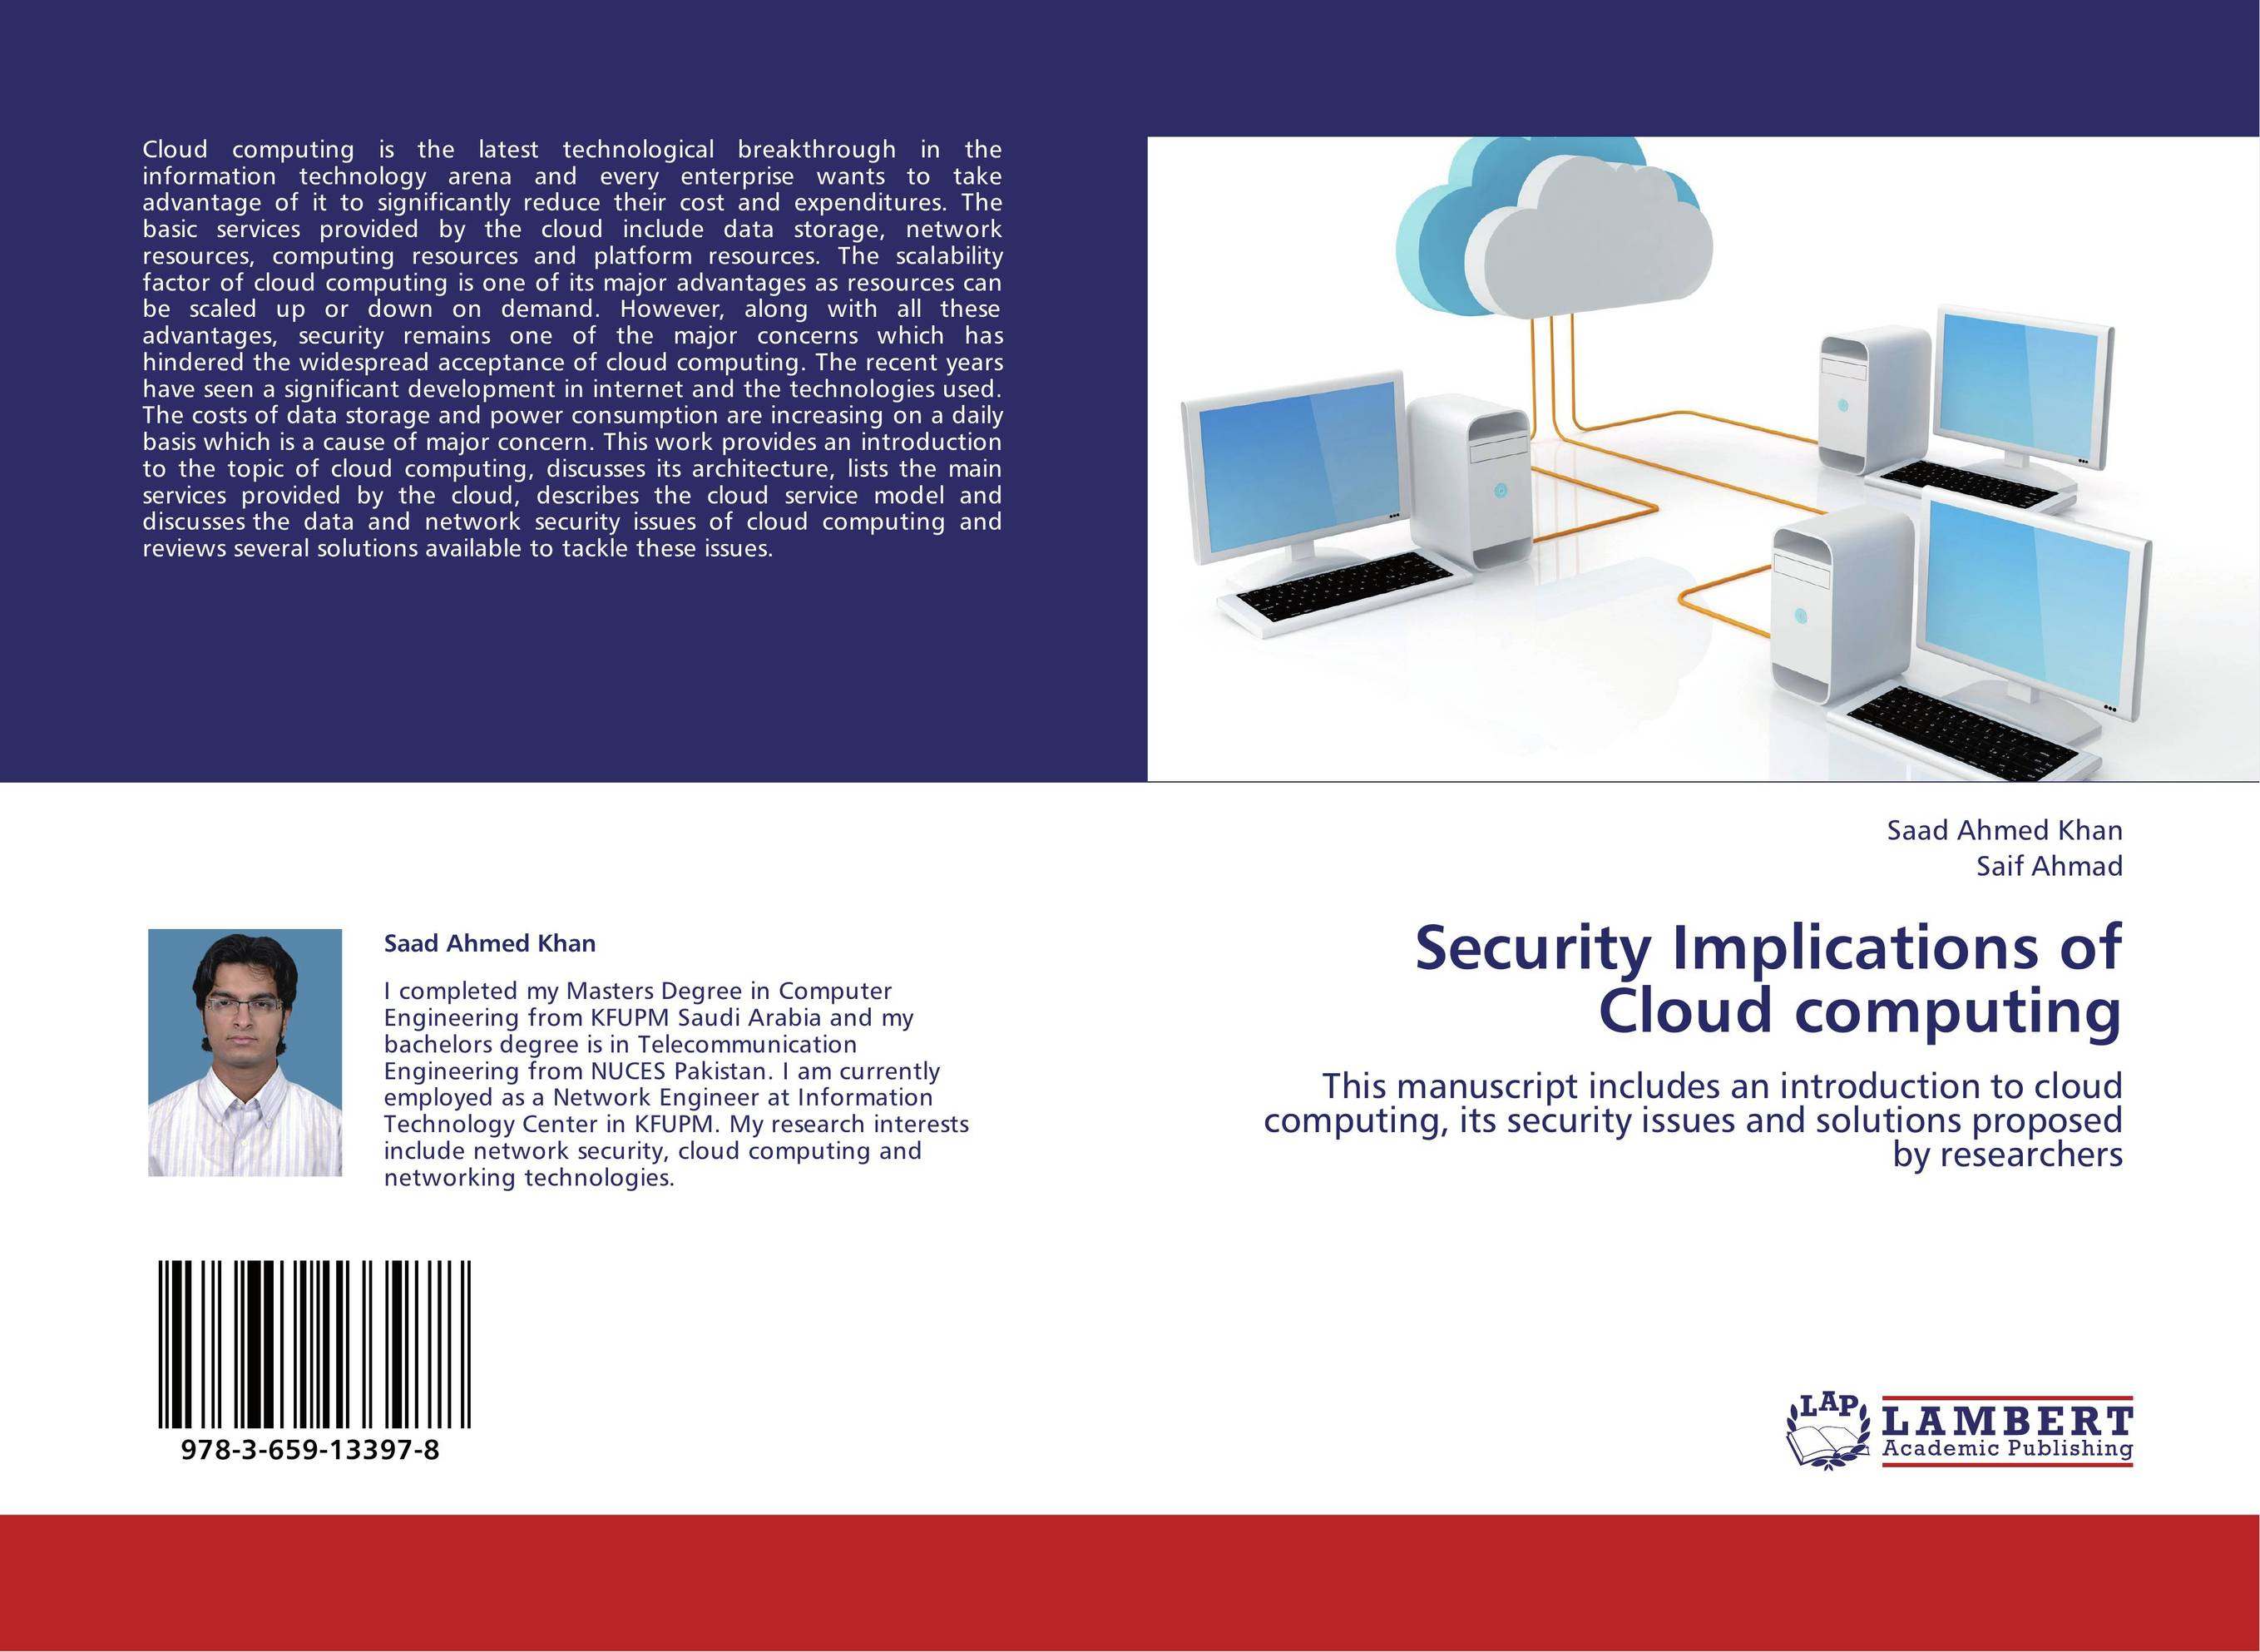 implementation of cloud computing in voip The 7 most common challenges to cloud computing us government watchdog group finds common challenges across agencies looking to implement cloud computing but most issues translate into private companies as well.